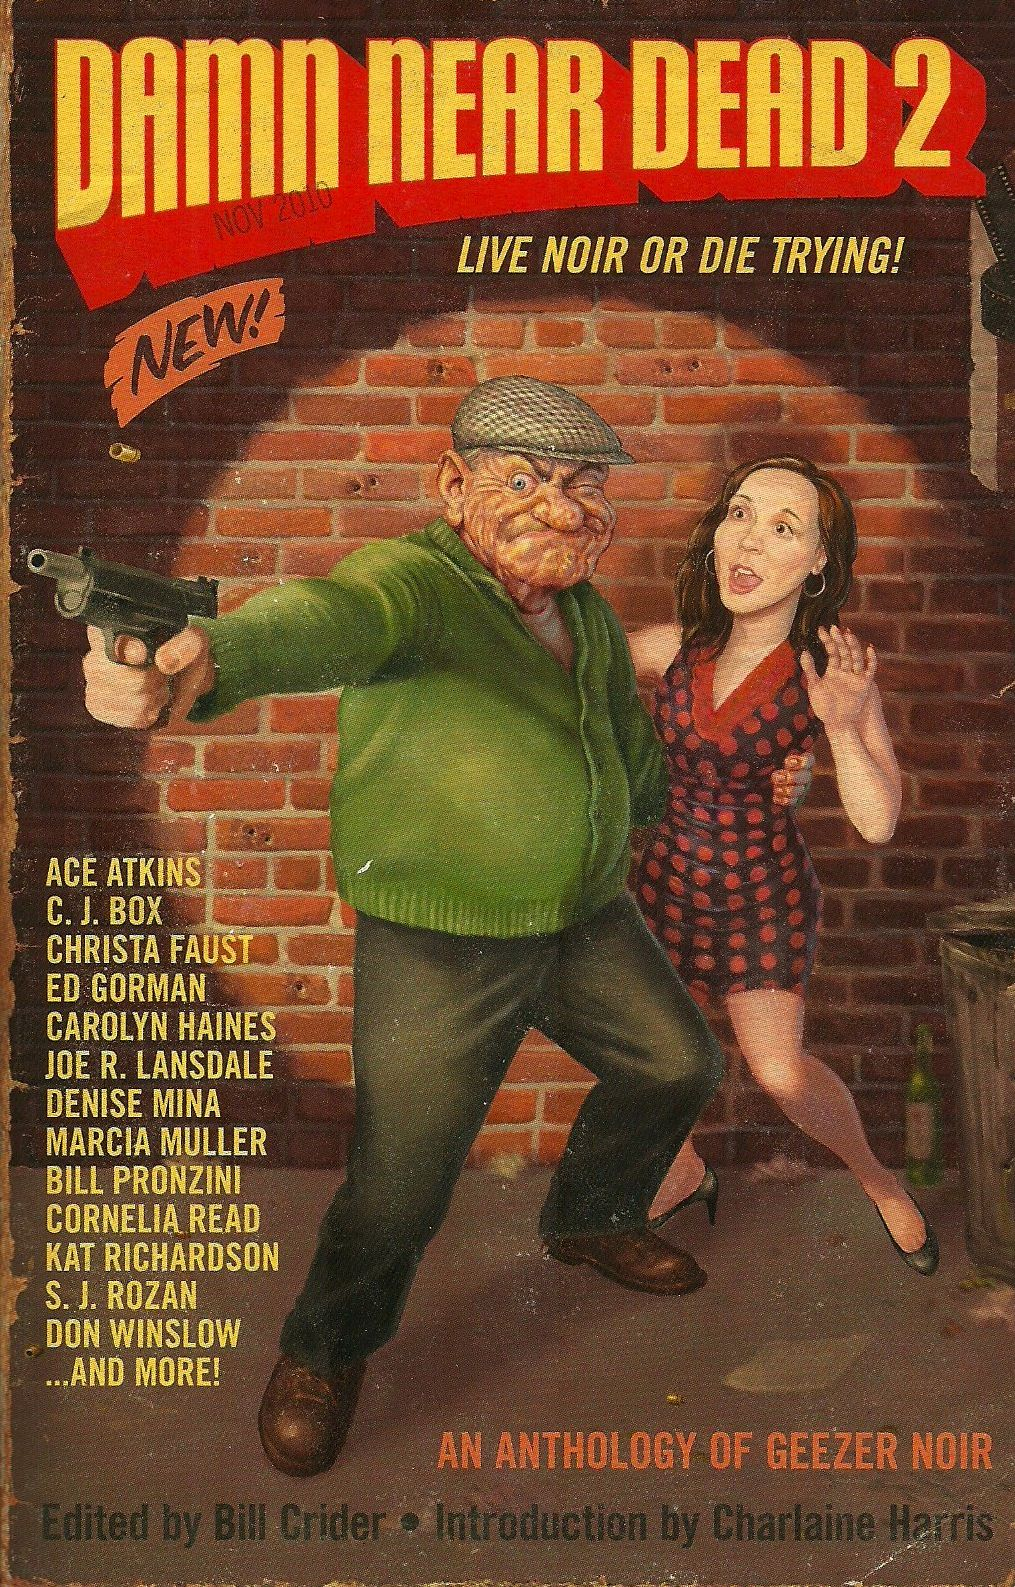 Geezer Noir Returns With A Vengeance In Damn Near Dead 2: Live Noir Or Die  Trying (busted Flush Press, 2010) The First Collection, Released Back In  2006,